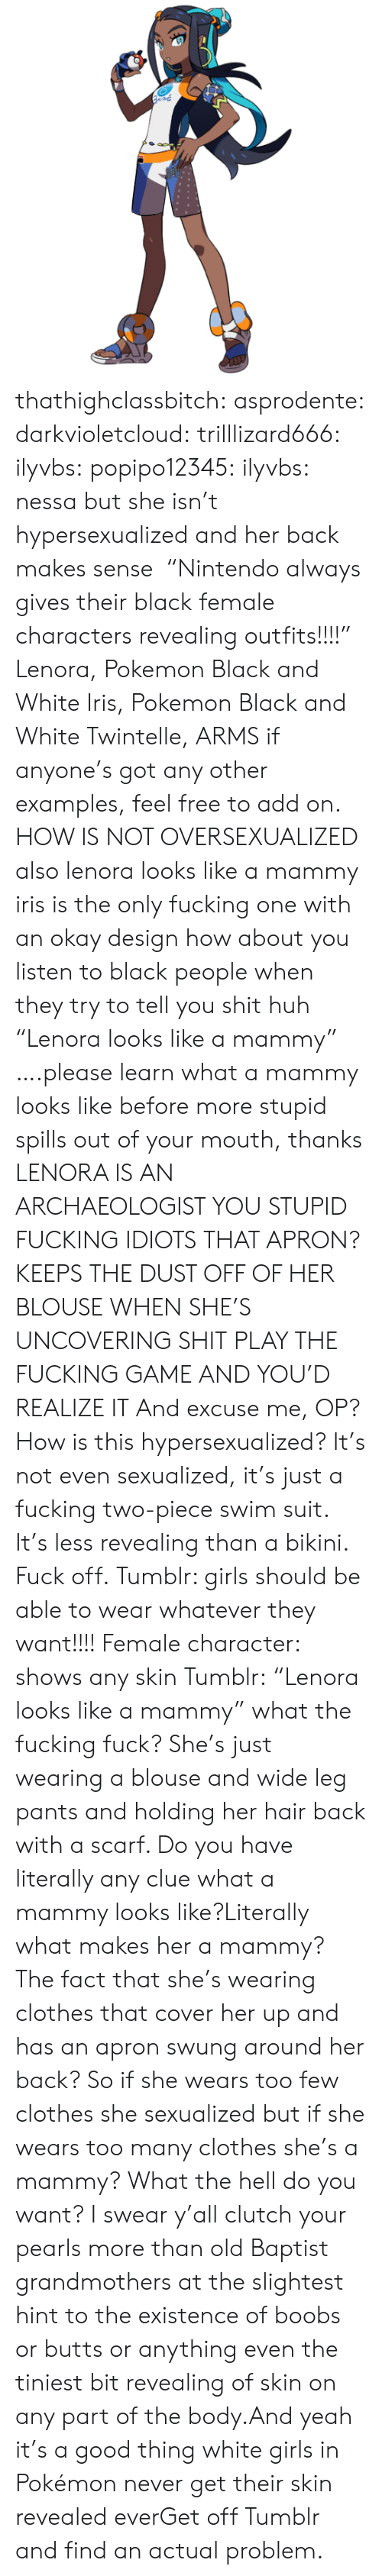 "butts: Bend thathighclassbitch: asprodente:   darkvioletcloud:  trilllizard666:  ilyvbs:  popipo12345:  ilyvbs: nessa but she isn't hypersexualized and her back makes sense  ""Nintendo always gives their black female characters revealing outfits!!!!"" Lenora, Pokemon Black and White Iris, Pokemon Black and White Twintelle, ARMS  if anyone's got any other examples, feel free to add on.  HOW IS NOT OVERSEXUALIZED  also lenora looks like a mammy iris is the only fucking one with an okay design how about you listen to black people when they try to tell you shit huh  ""Lenora looks like a mammy"" ….please learn what a mammy looks like before more stupid spills out of your mouth, thanks  LENORA IS AN ARCHAEOLOGIST YOU STUPID FUCKING IDIOTS THAT APRON? KEEPS THE DUST OFF OF HER BLOUSE WHEN SHE'S UNCOVERING SHIT PLAY THE FUCKING GAME AND YOU'D REALIZE IT  And excuse me, OP? How is this hypersexualized? It's not even sexualized, it's just a fucking two-piece swim suit. It's less revealing than a bikini. Fuck off.   Tumblr: girls should be able to wear whatever they want!!!! Female character: shows any skin Tumblr:   ""Lenora looks like a mammy"" what the fucking fuck? She's just wearing a blouse and wide leg pants and holding her hair back with a scarf. Do you have literally any clue what a mammy looks like?Literally what makes her a mammy? The fact that she's wearing clothes that cover her up and has an apron swung around her back? So if she wears too few clothes she sexualized but if she wears too many clothes she's a mammy? What the hell do you want? I swear y'all clutch your pearls more than old Baptist grandmothers at the slightest hint to the existence of boobs or butts or anything even the tiniest bit revealing of skin on any part of the body.And yeah it's a good thing white girls in Pokémon never get their skin revealed everGet off Tumblr and find an actual problem."